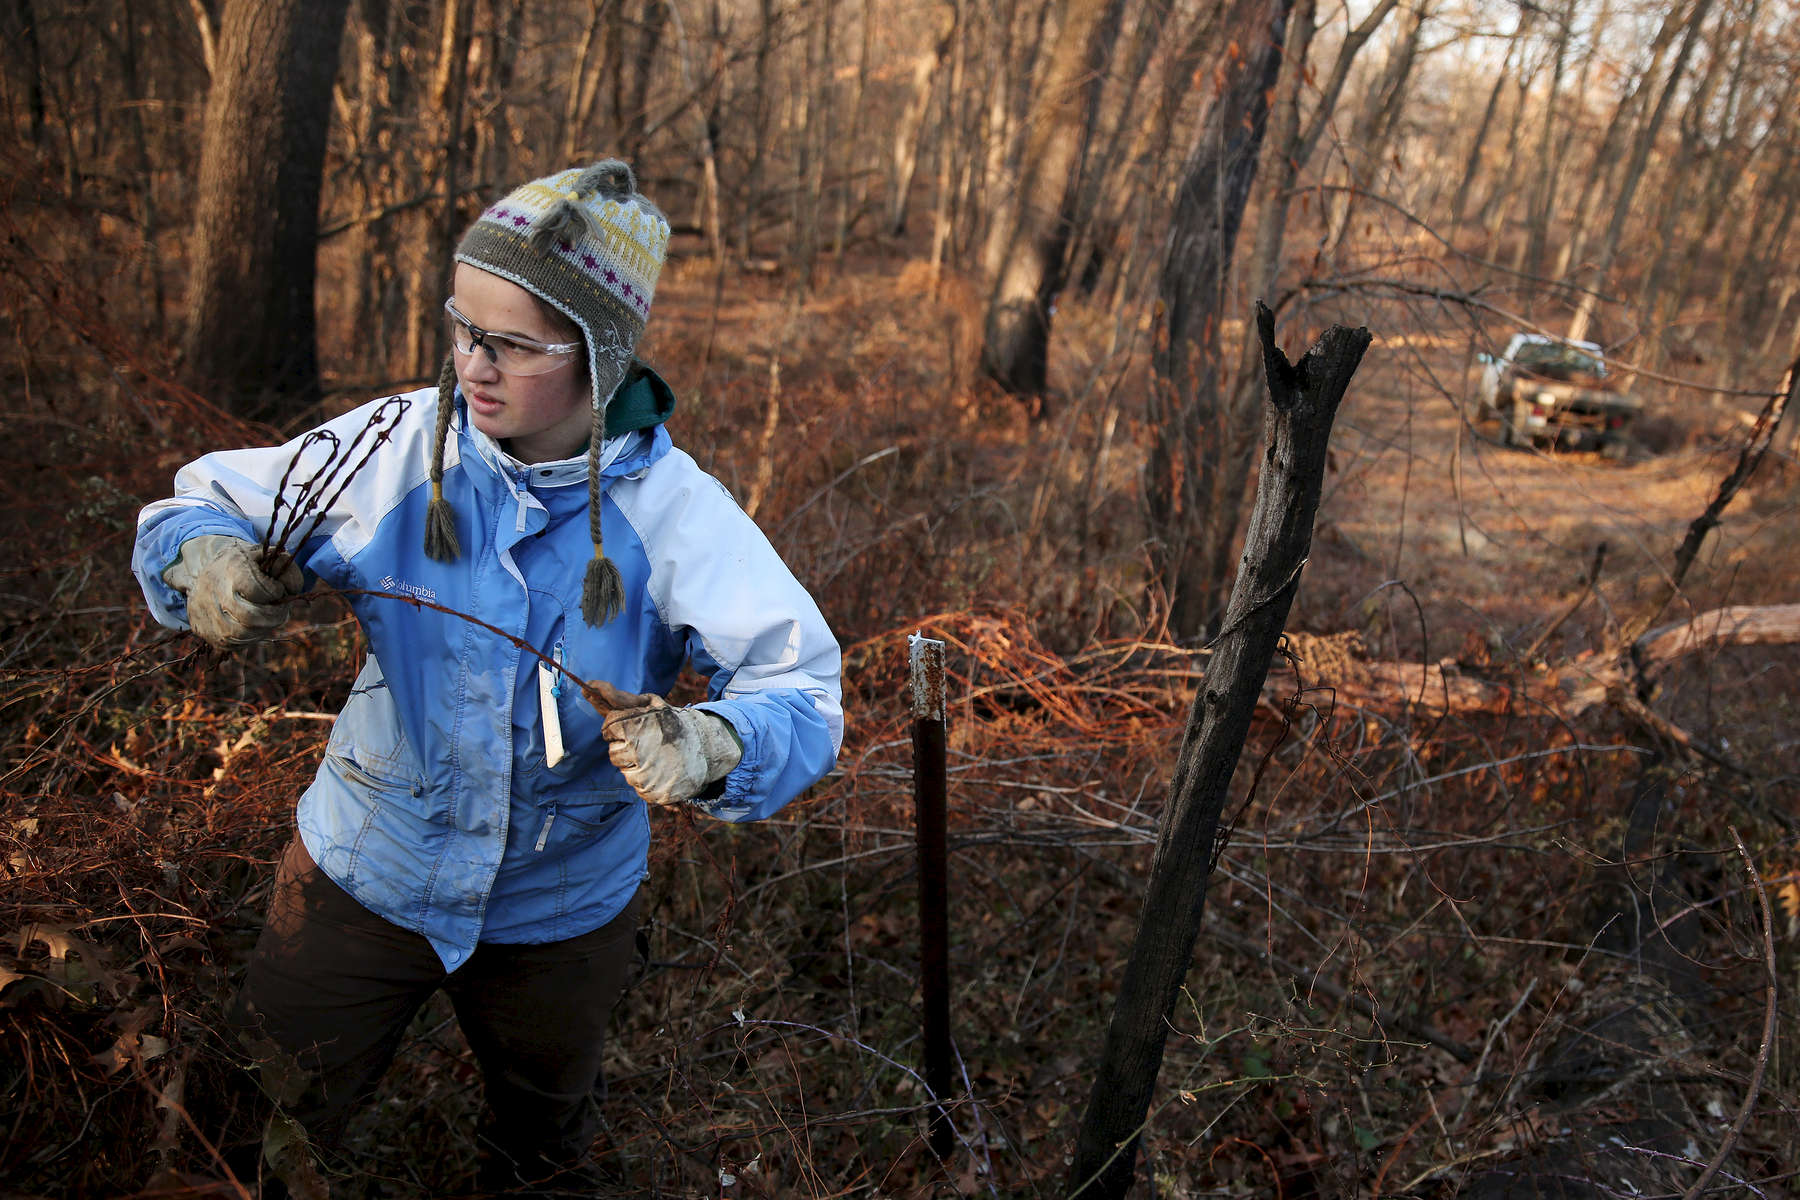 Volunteer Ruth Bowers-Sword works to clear a stretch of old fence in what will eventually be the south bison unit at the Nachusa Grasslands more than doubling the bison's overall area.